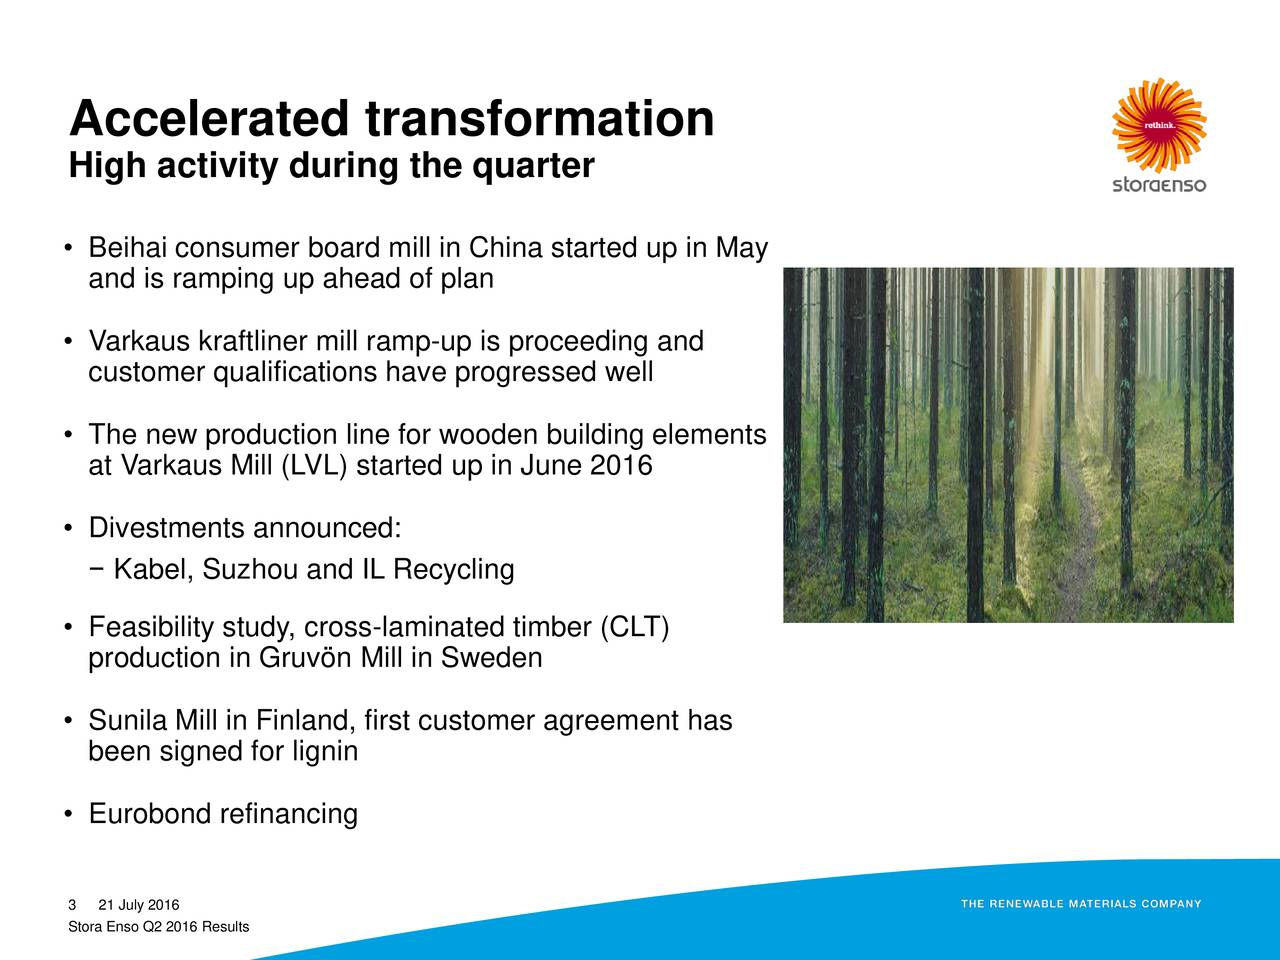 High activity during the quarter Beihai consumer board mill in China started up in May and is ramping up ahead of plan Varkaus kraftliner mill ramp-up is proceeding and customer qualifications have progressed well The new production line for wooden building elements at Varkaus Mill (LVL) started up in June 2016 Divestments announced: Kabel, Suzhou and IL Recycling Feasibility study, cross-laminated timber (CLT) production in Gruvn Mill in Sweden Sunila Mill in Finland, first customer agreement has been signed for lignin Eurobond refinancing 3 21 July 2016 Stora Enso Q2 2016 Results